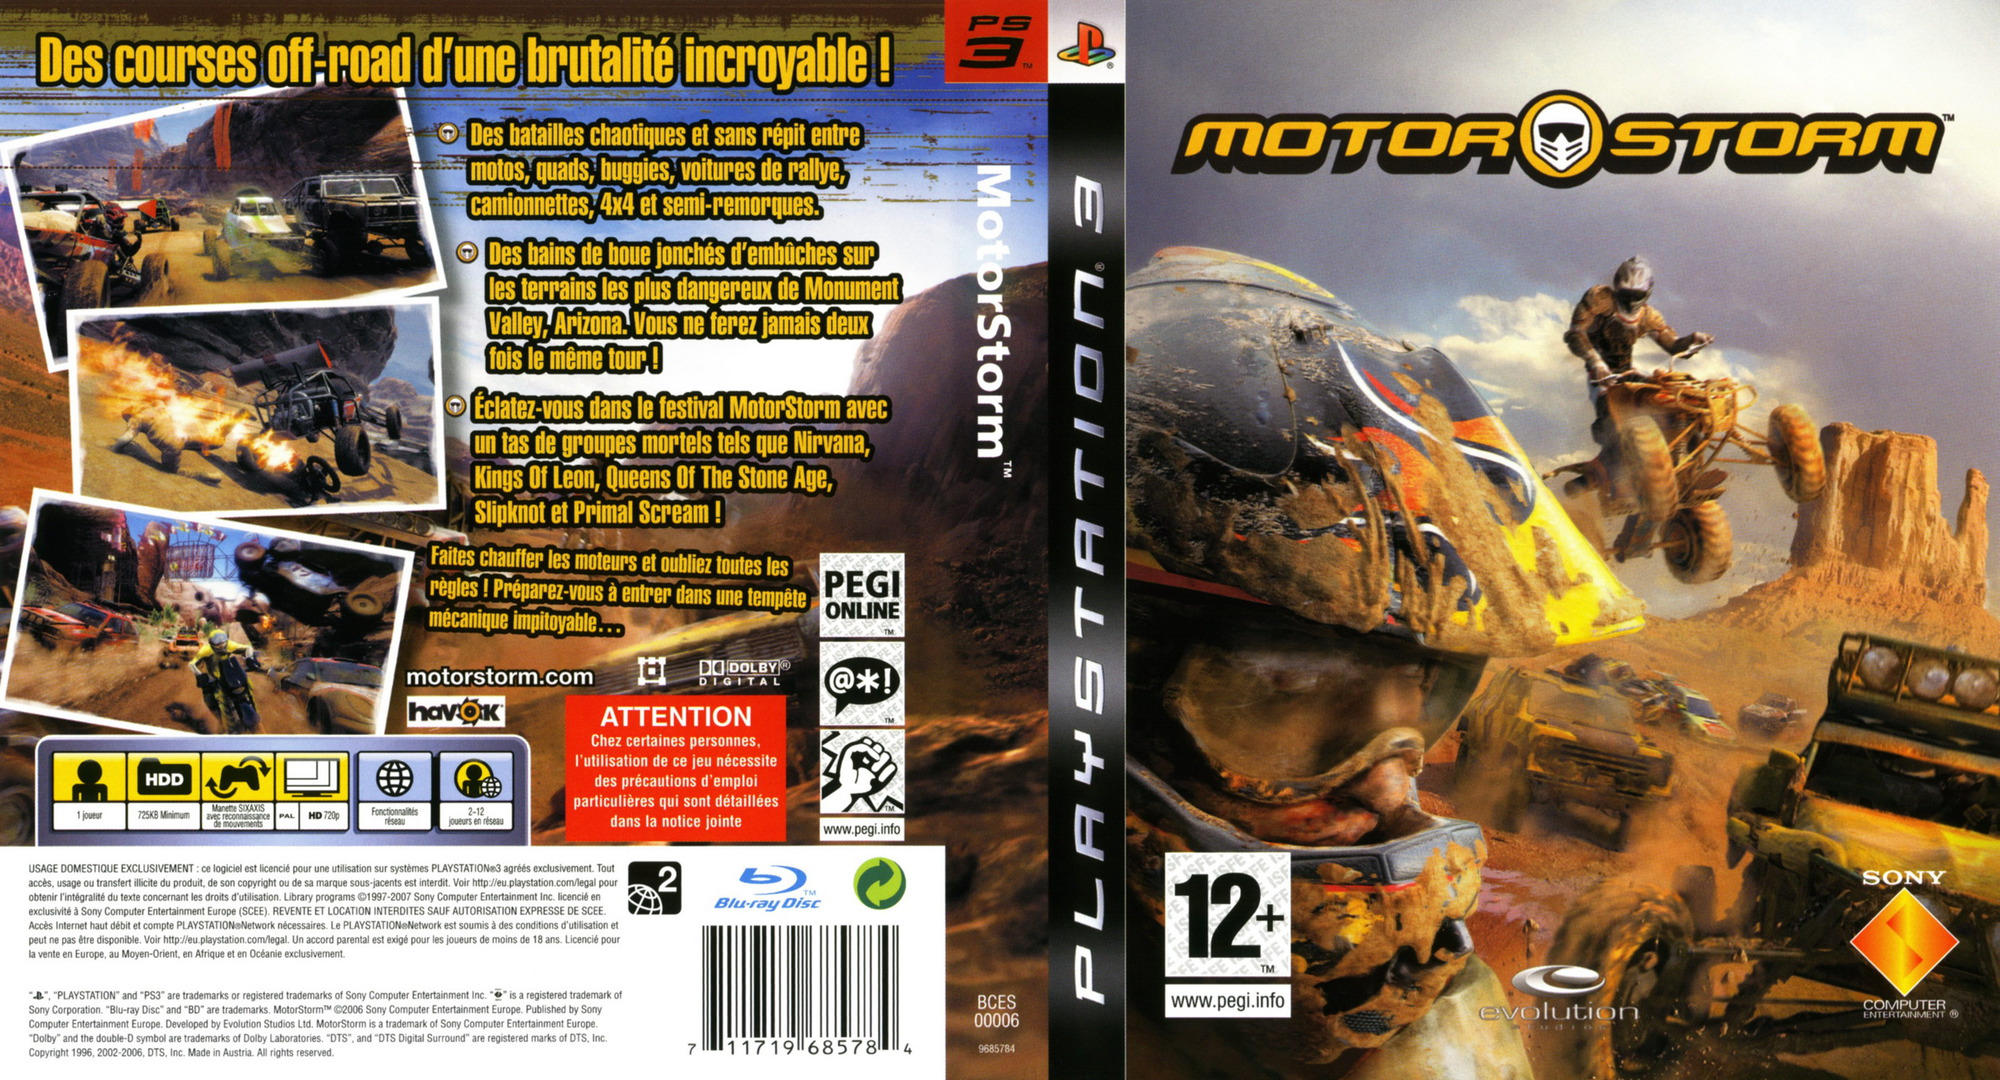 PS3 coverfullHQ (BCES00006)